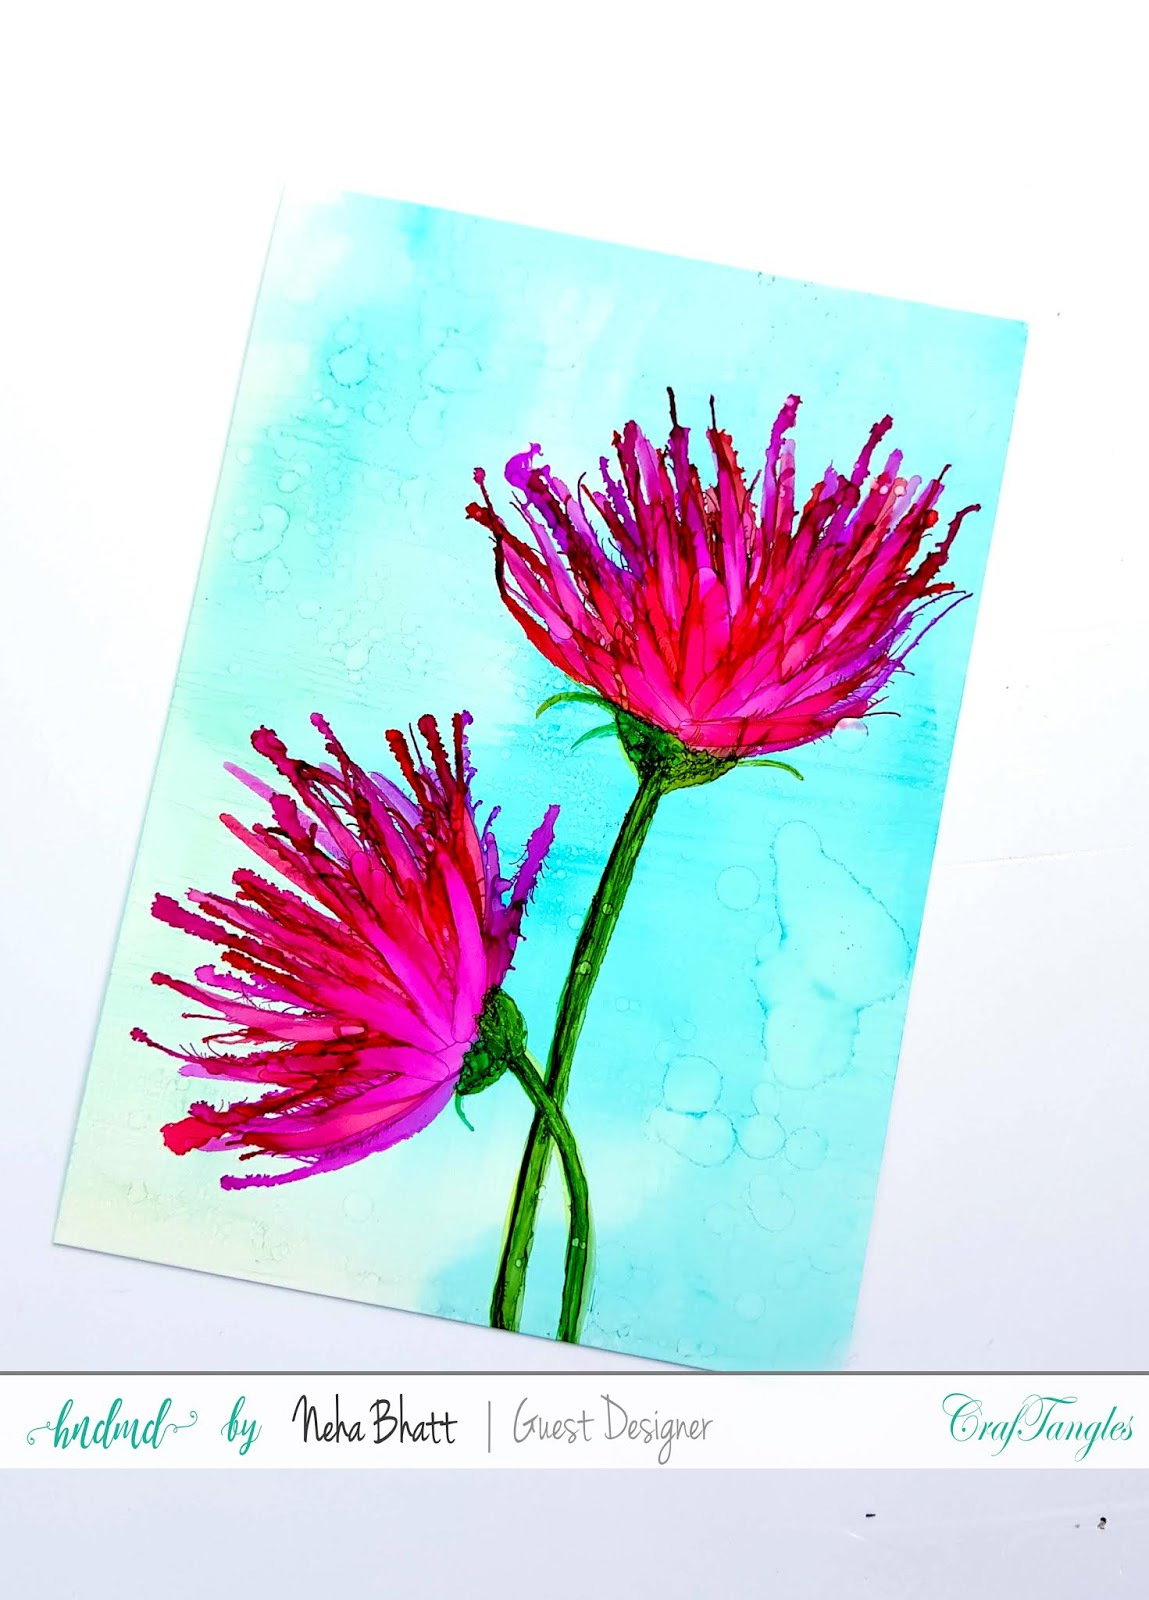 Some experiments with CrafTangles alcohol ink papers by Neha Bhatt [Periwinkle Creations] 14